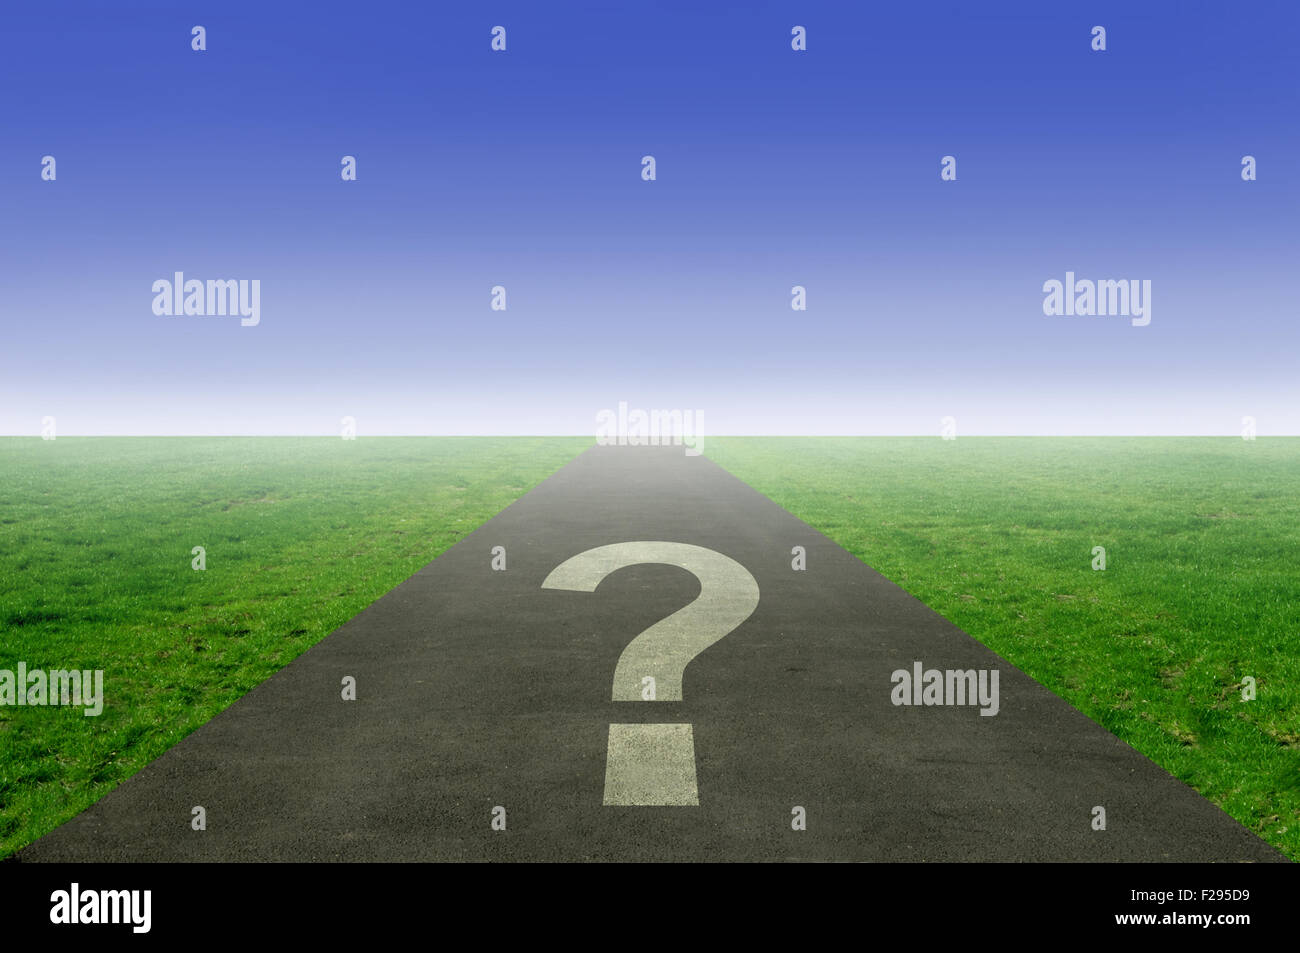 Question mark printed on an open road leading out to the horizon - Stock Image